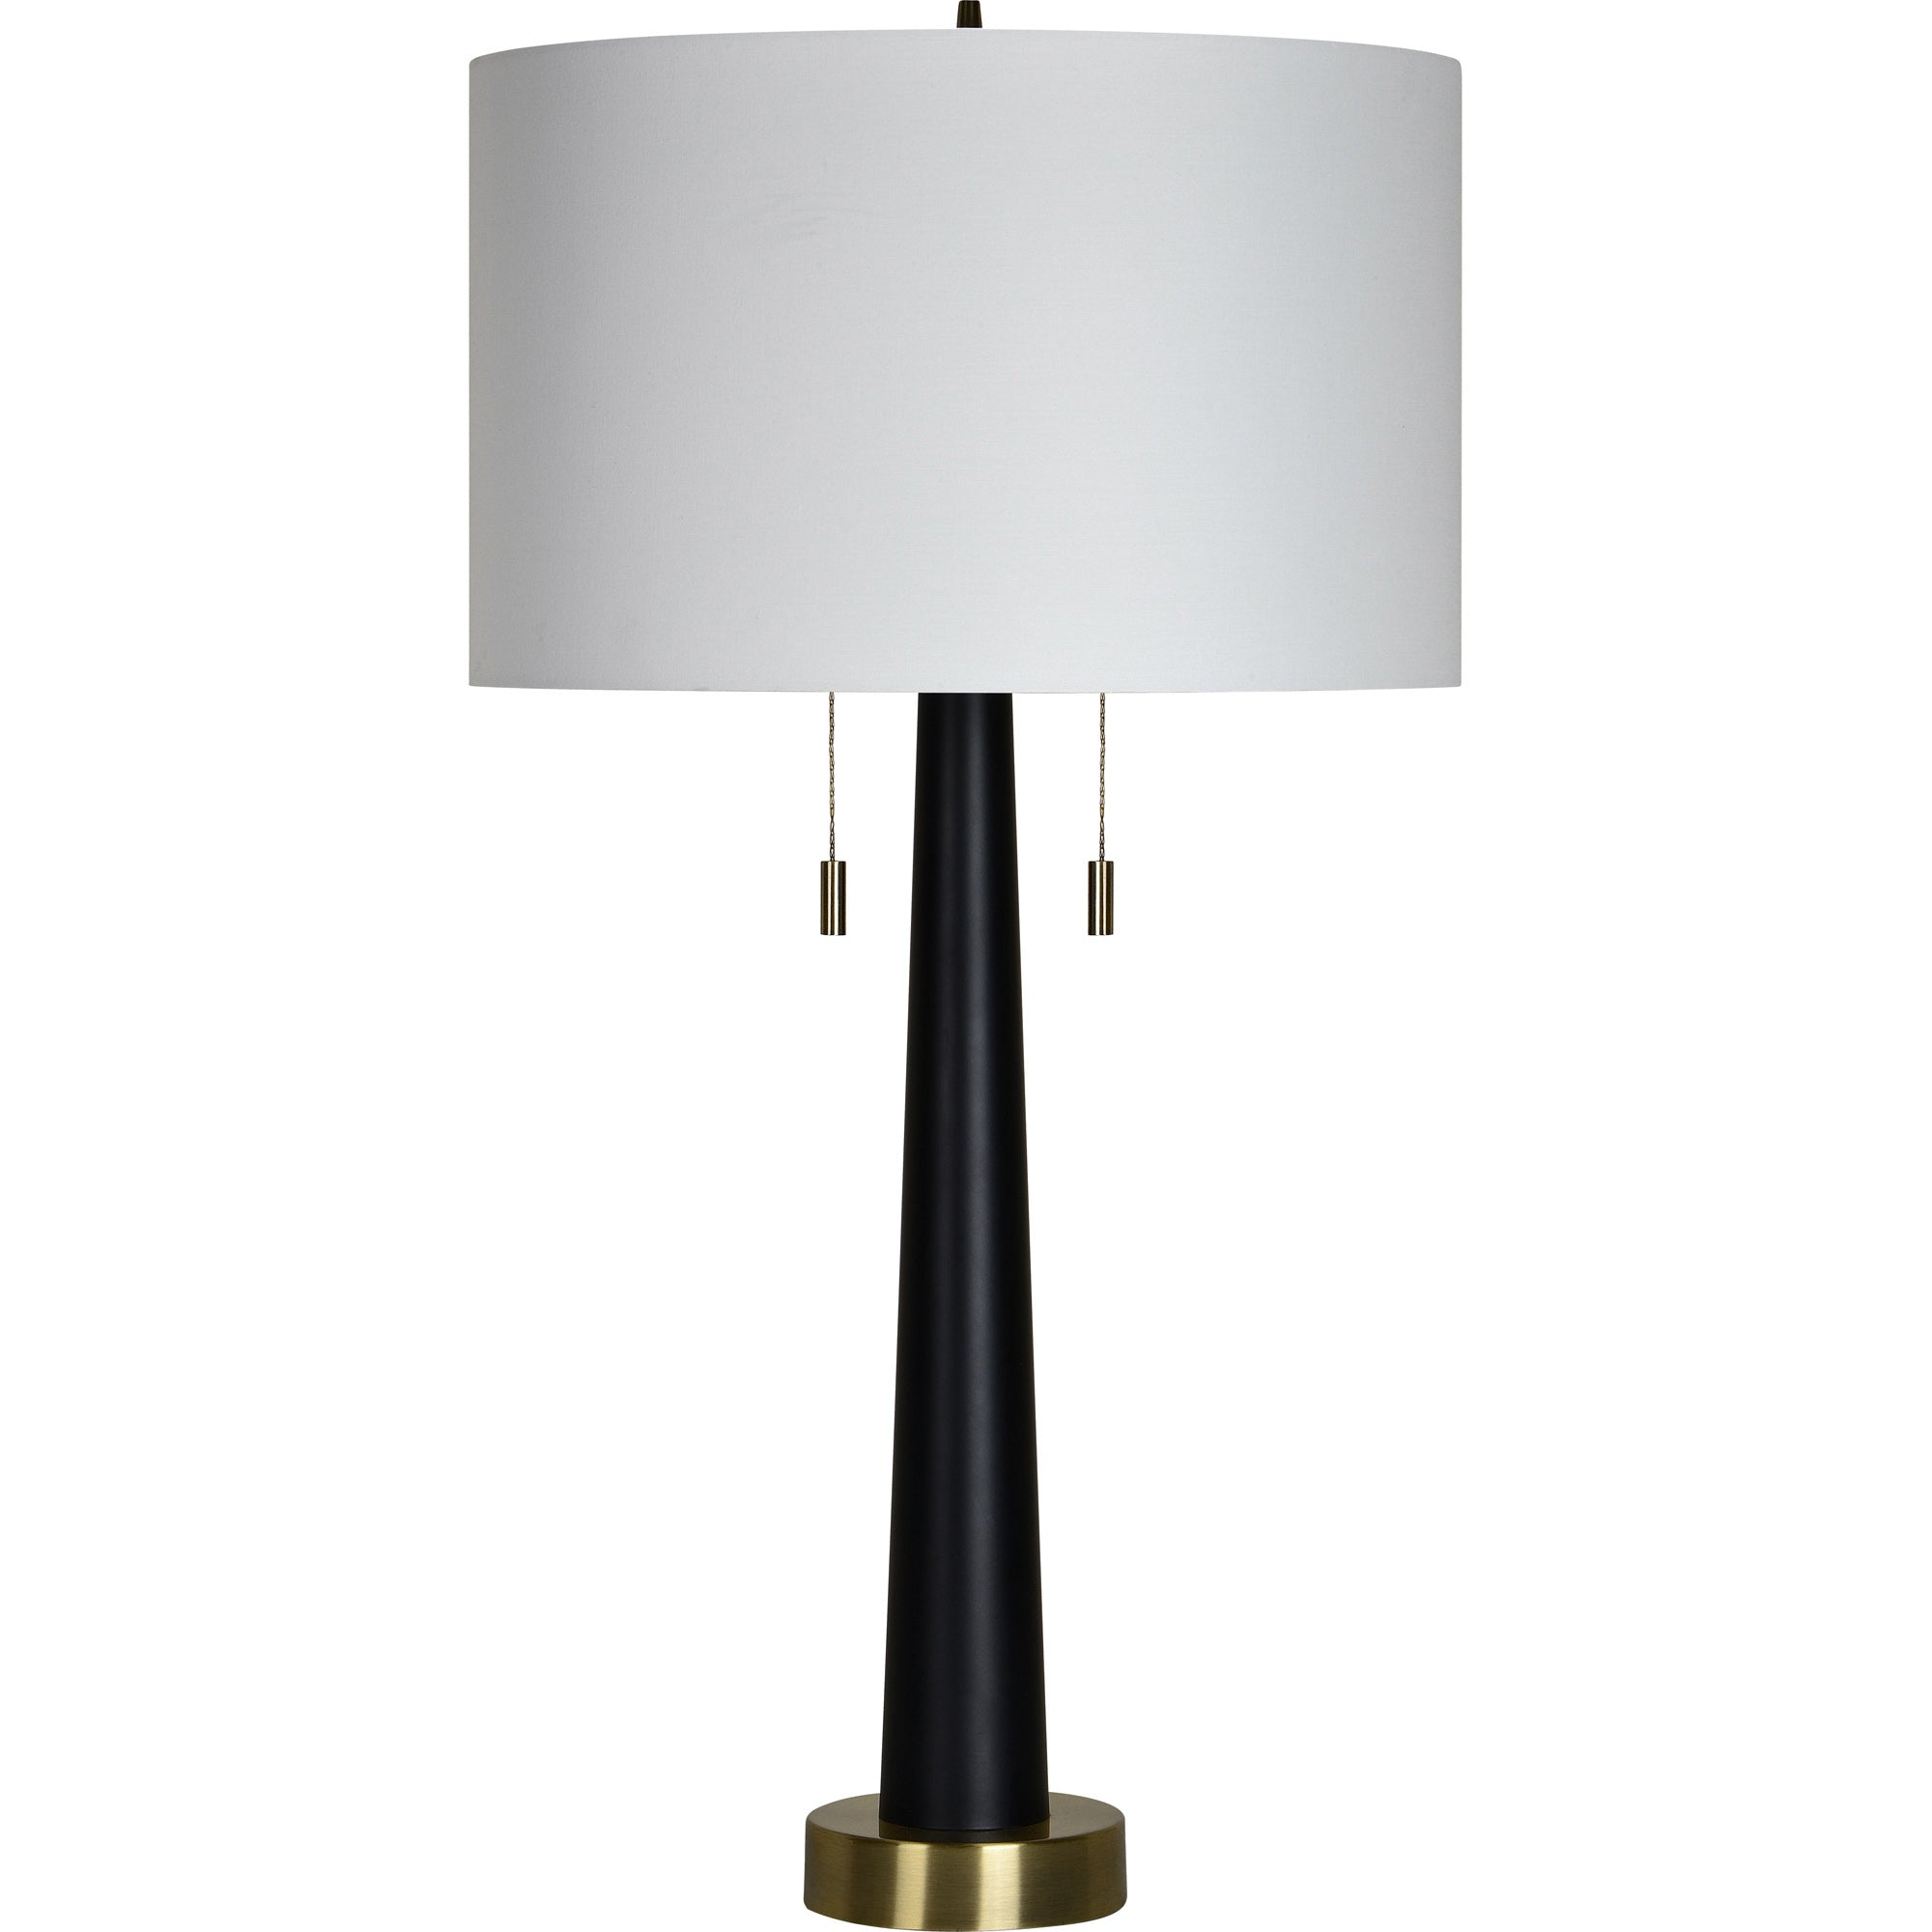 Diana Iron & Brass Table Lamp